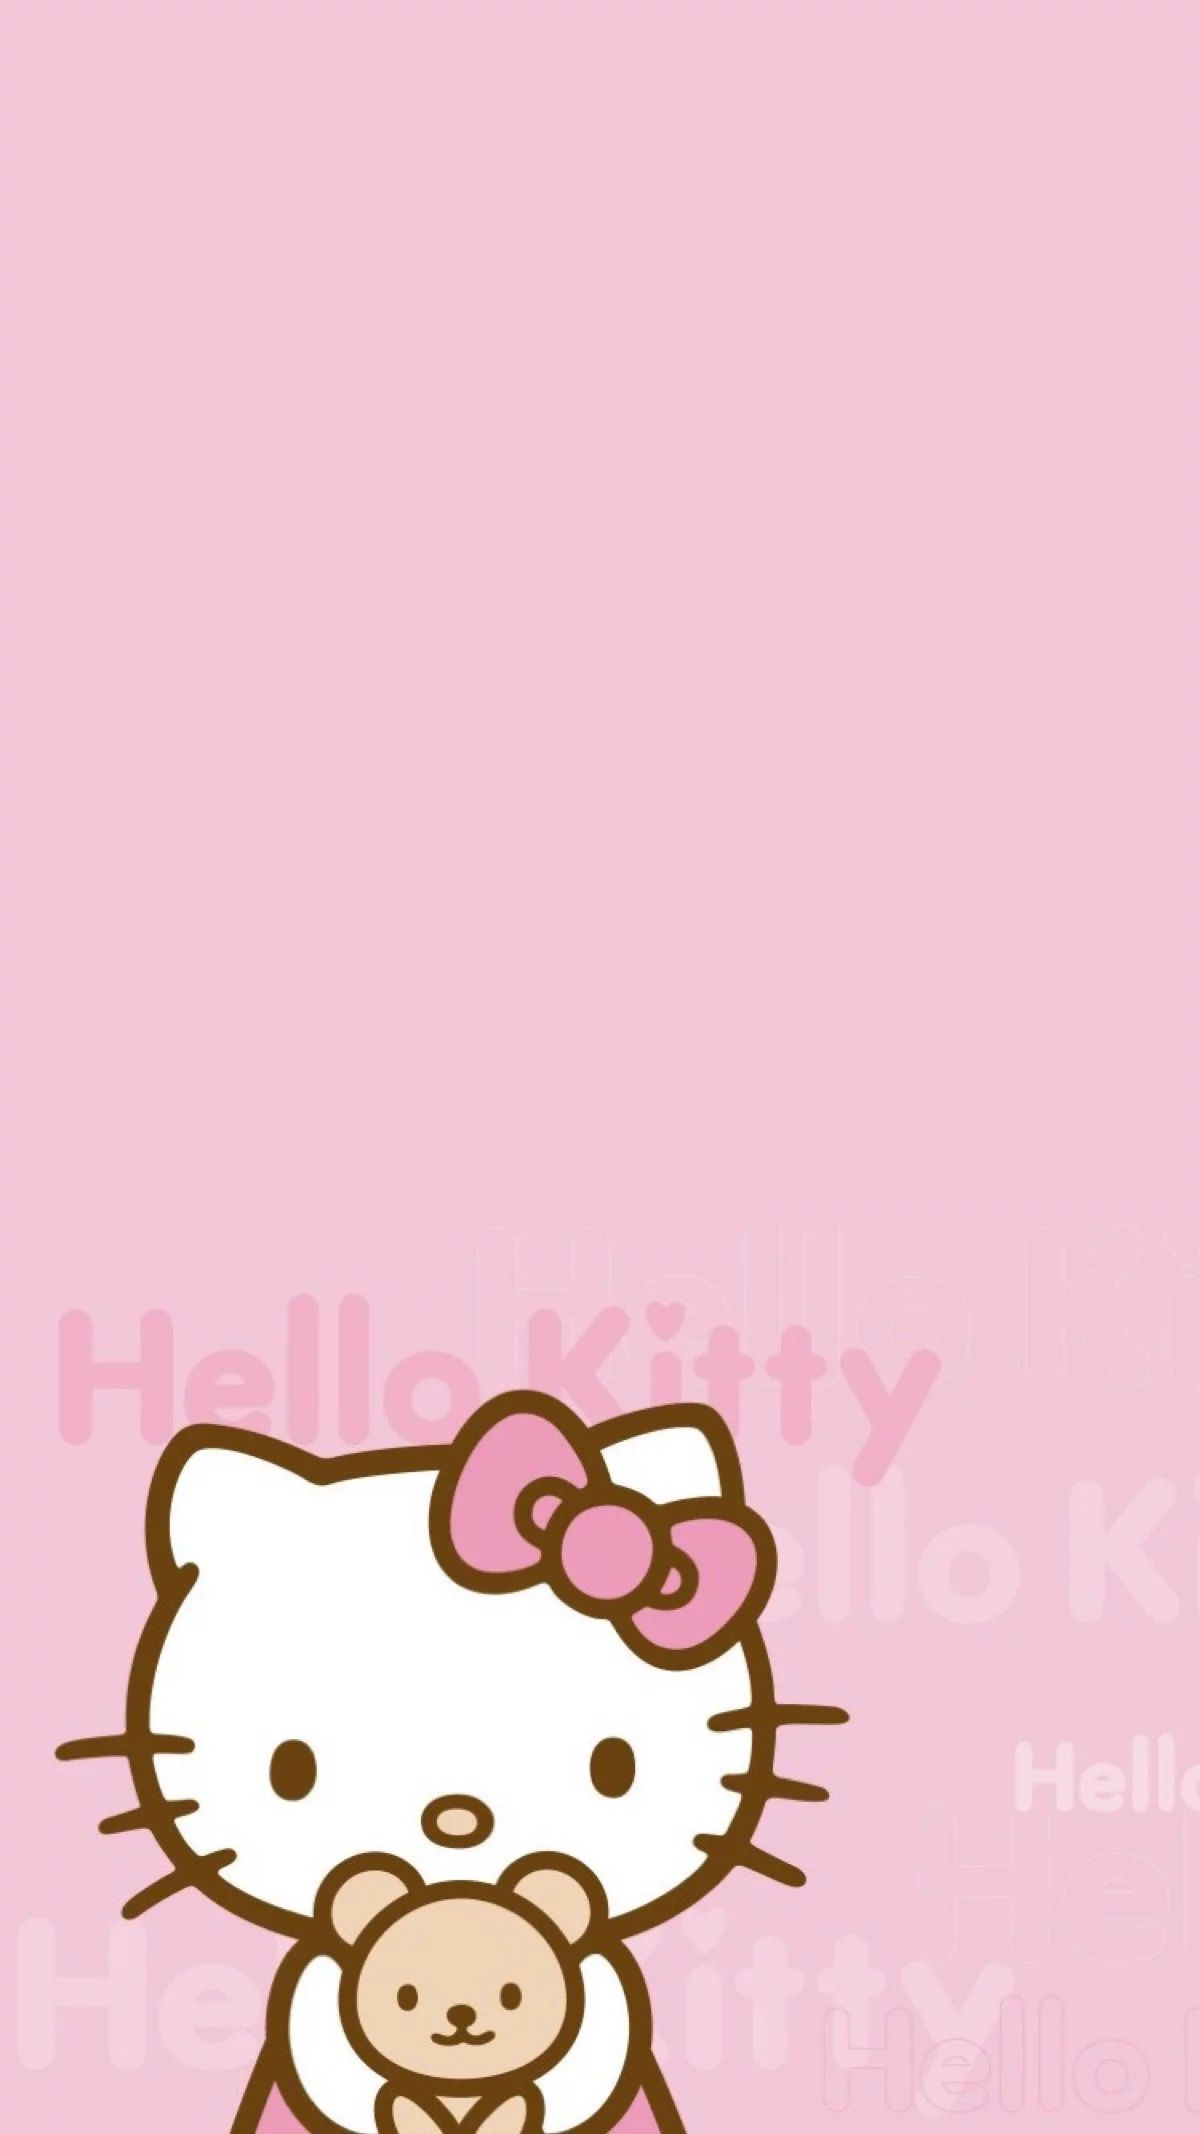 Pin by June KT. on -Wallpapers #KT 6  Hello kitty wallpaper free